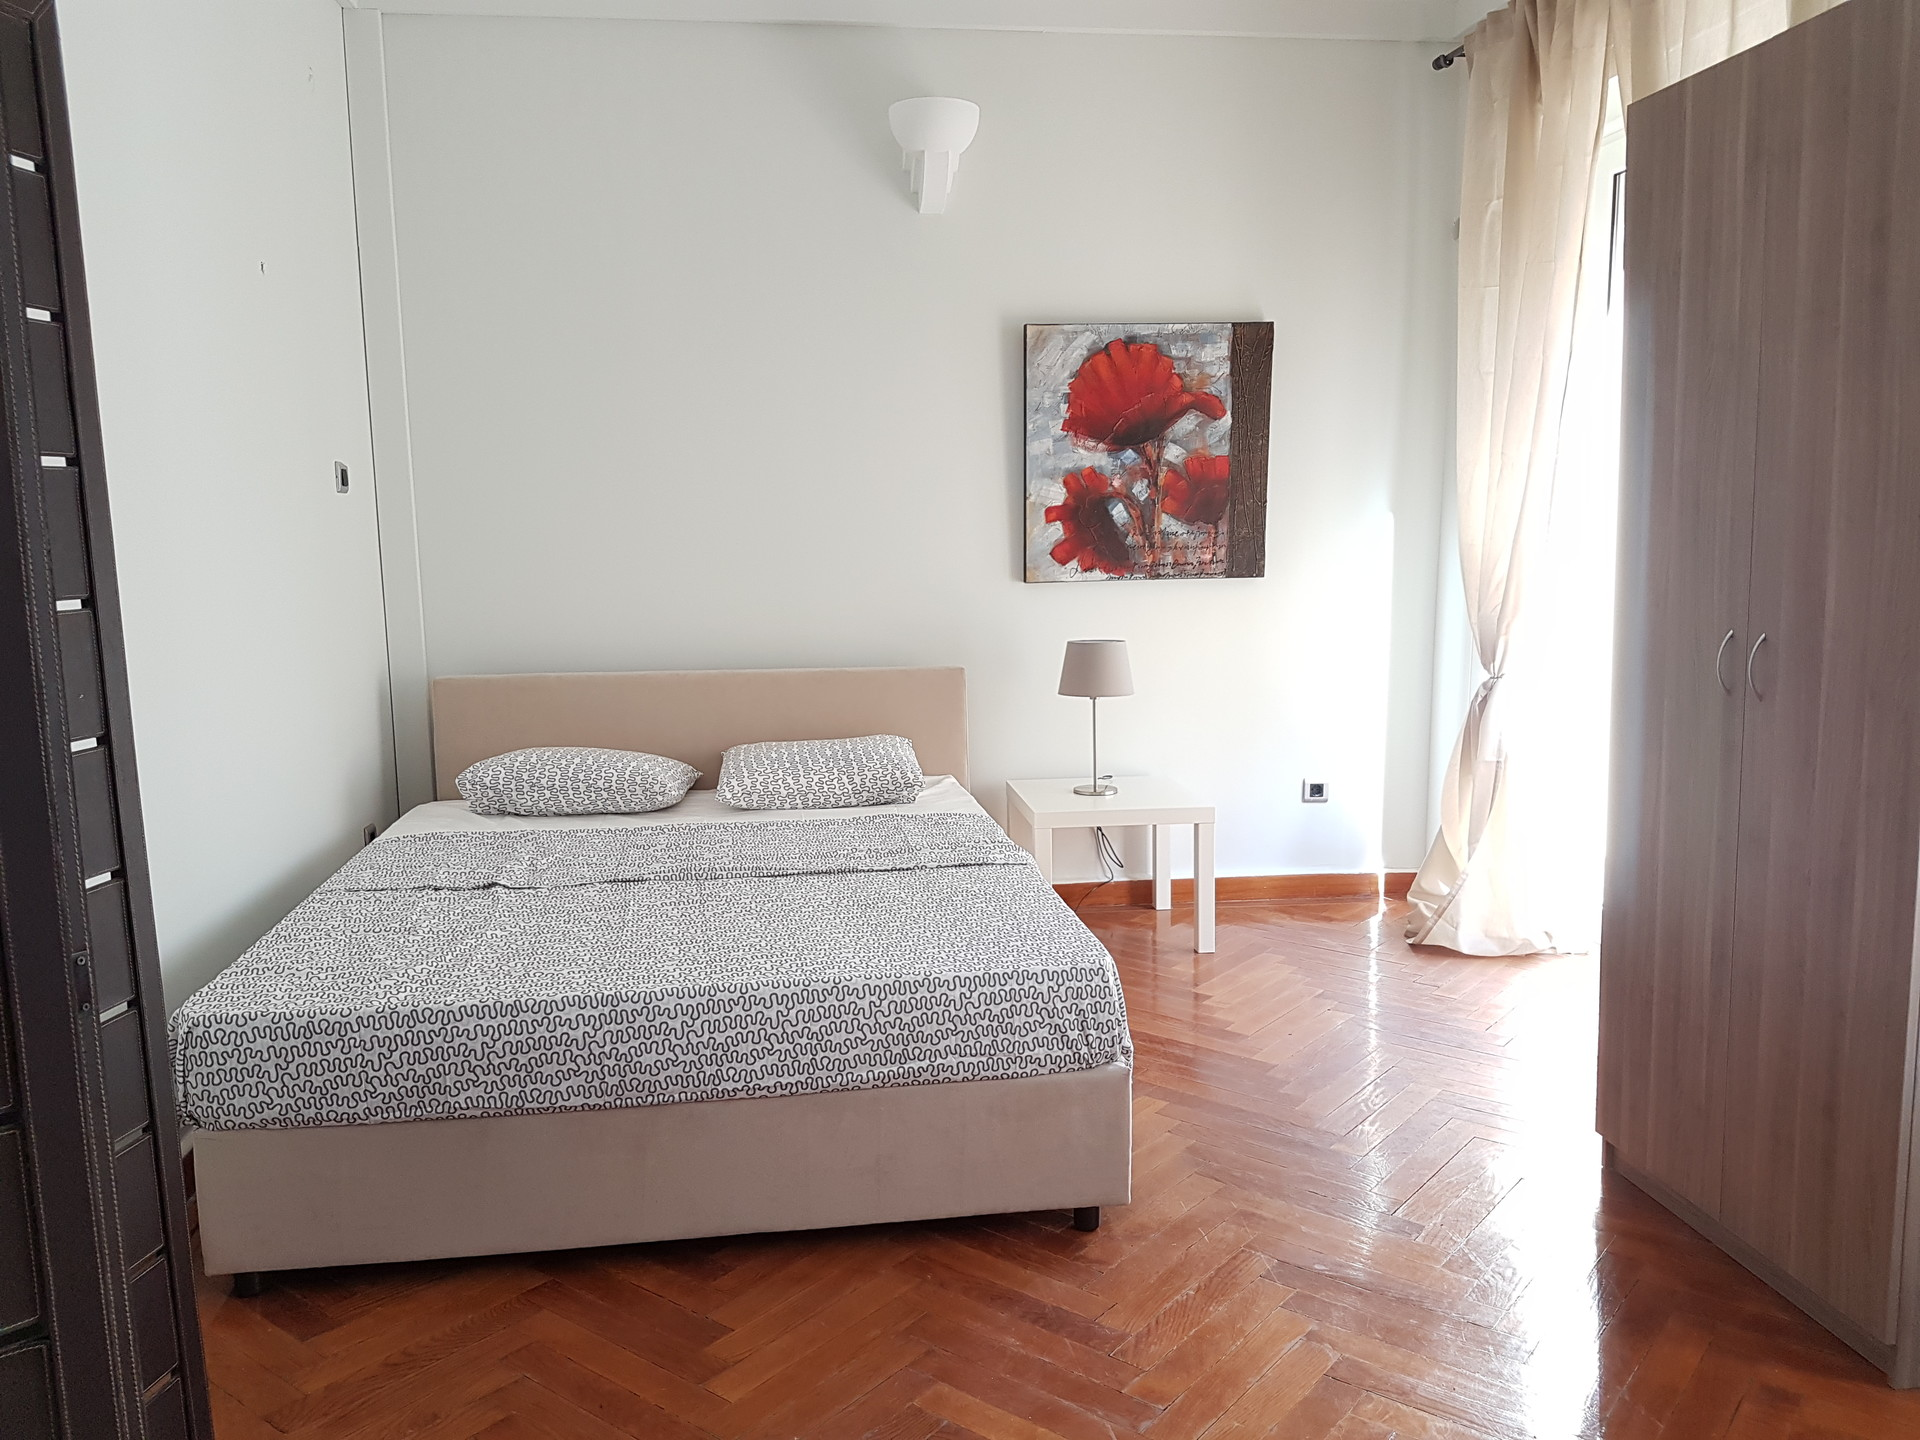 Sunny Big Classy 20m2 Room With A Balcony In A Very